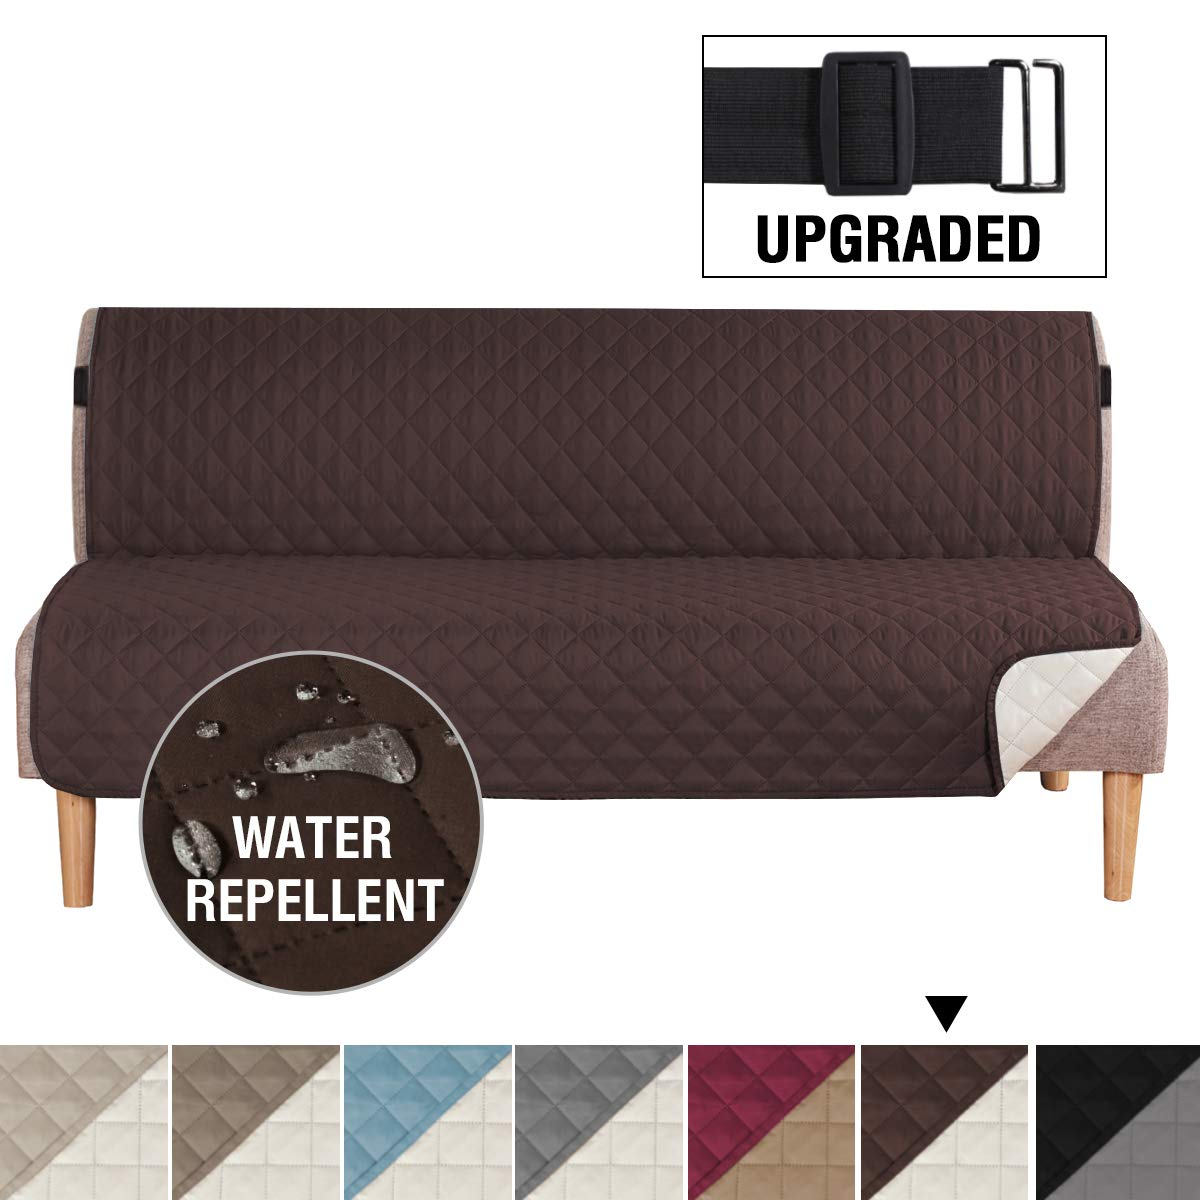 """H.VERSAILTEX Reversible Futon Slipcover Seat Width Up to 70"""" Washable Furniture Protector Water Repellent Futon Cover for Living Room 2"""" Elastic Strap Anti-Slip Futon Cover for Dogs Brown/Beige"""